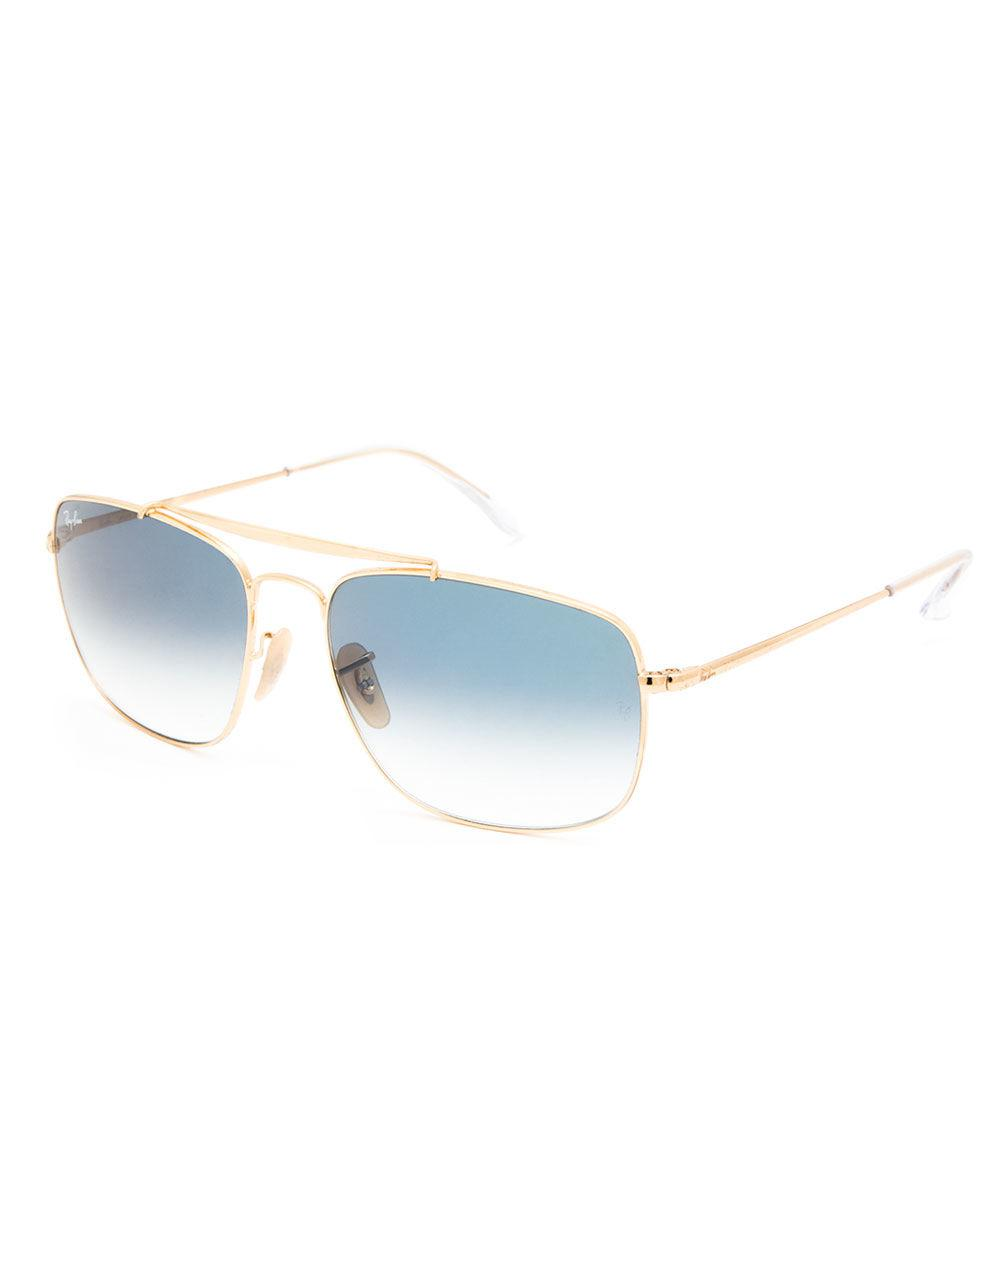 800d69100d5 Lyst - Ray-Ban Colonel Gold   Light Blue Gradient Sunglasses in Blue ...